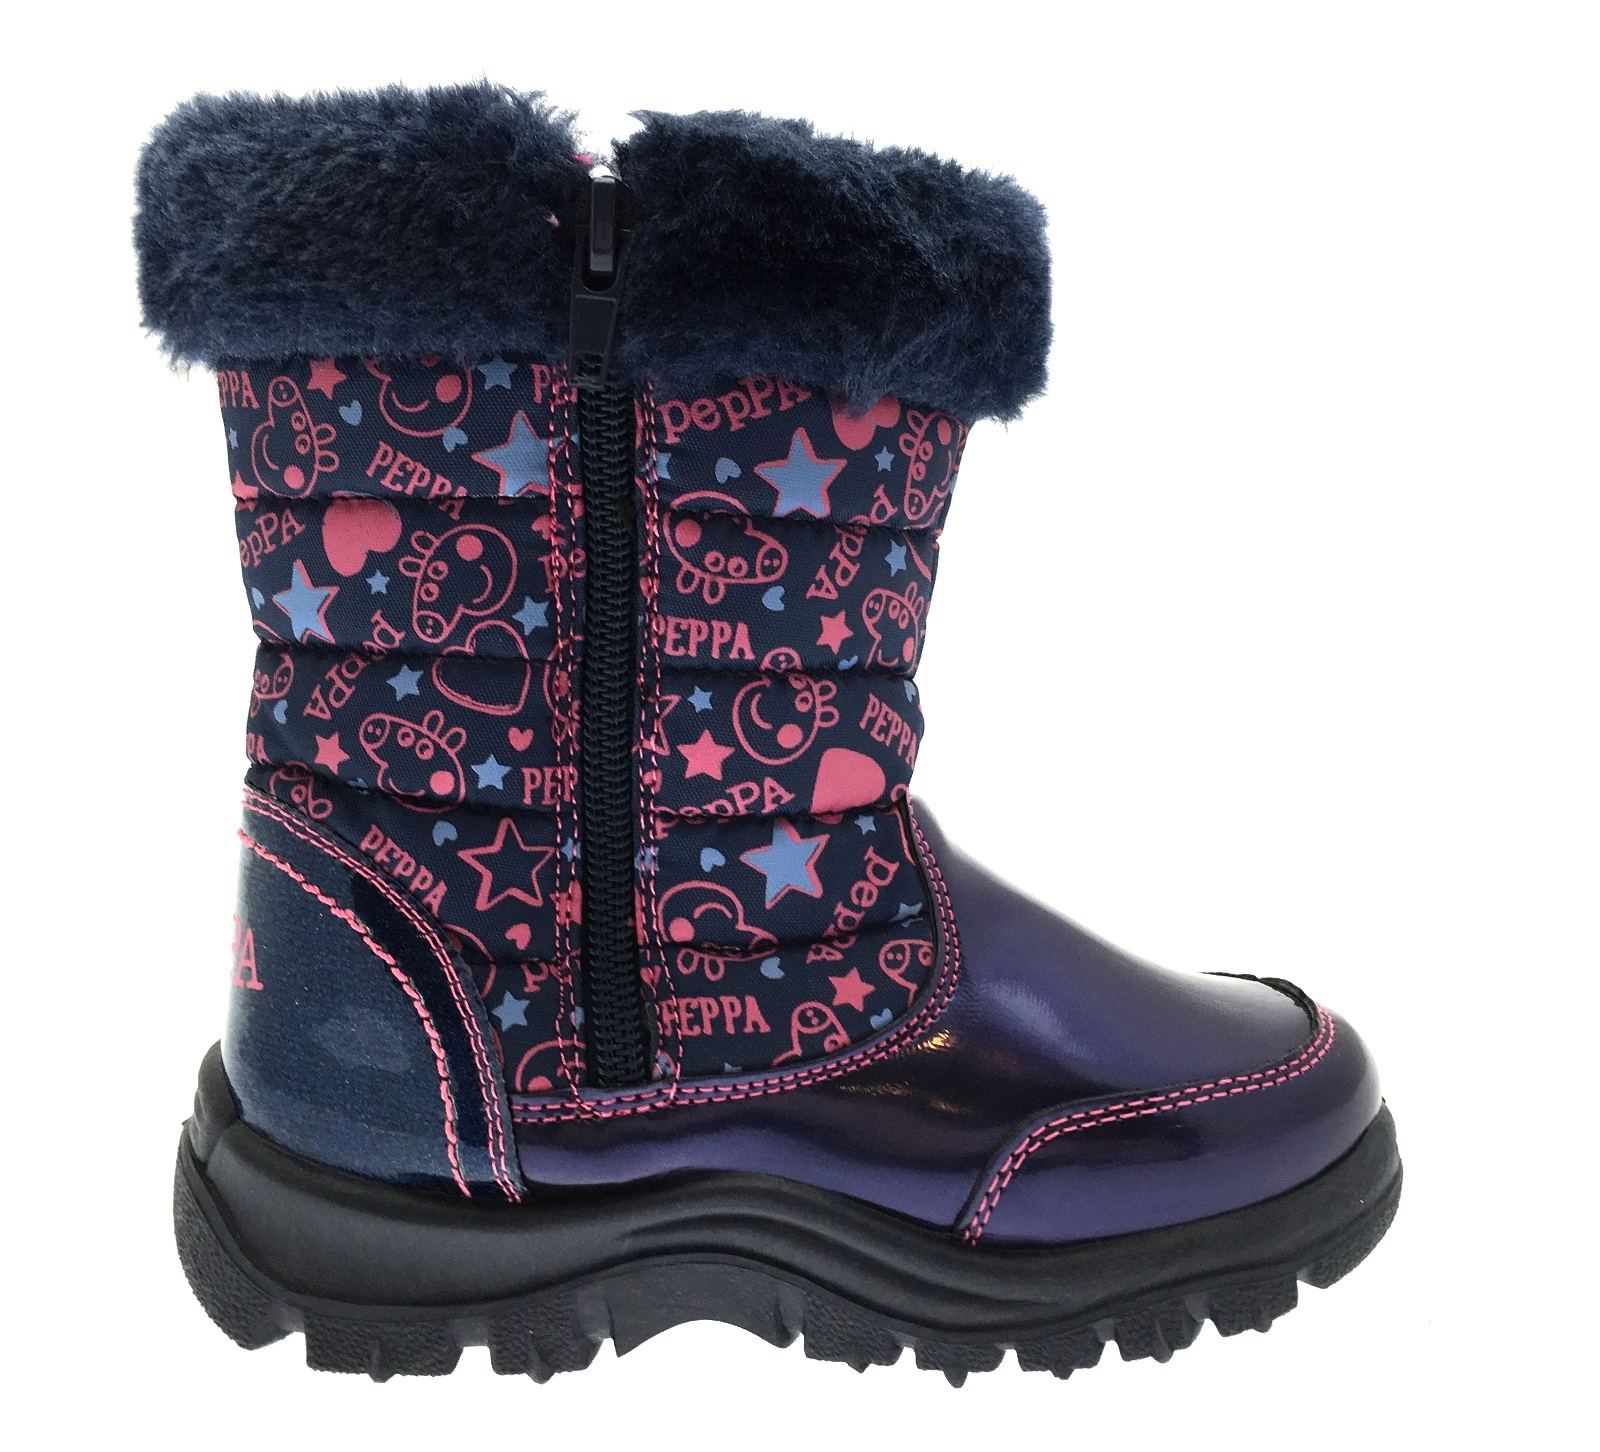 Girls Peppa Pig Snow Boots Warm Winter Faux Fur Trim Mid Calf ...